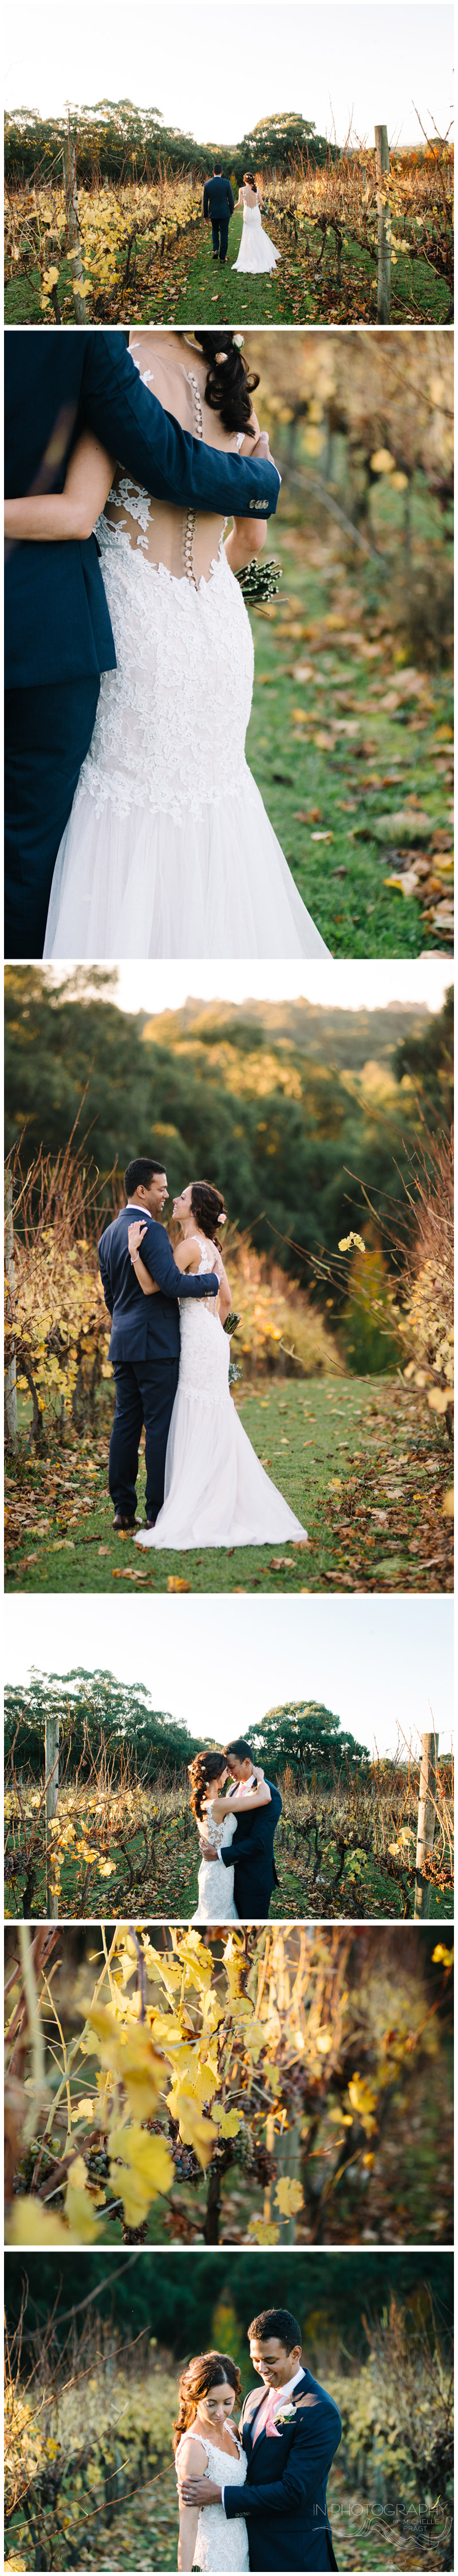 Autumn wedding in Yarra Valley